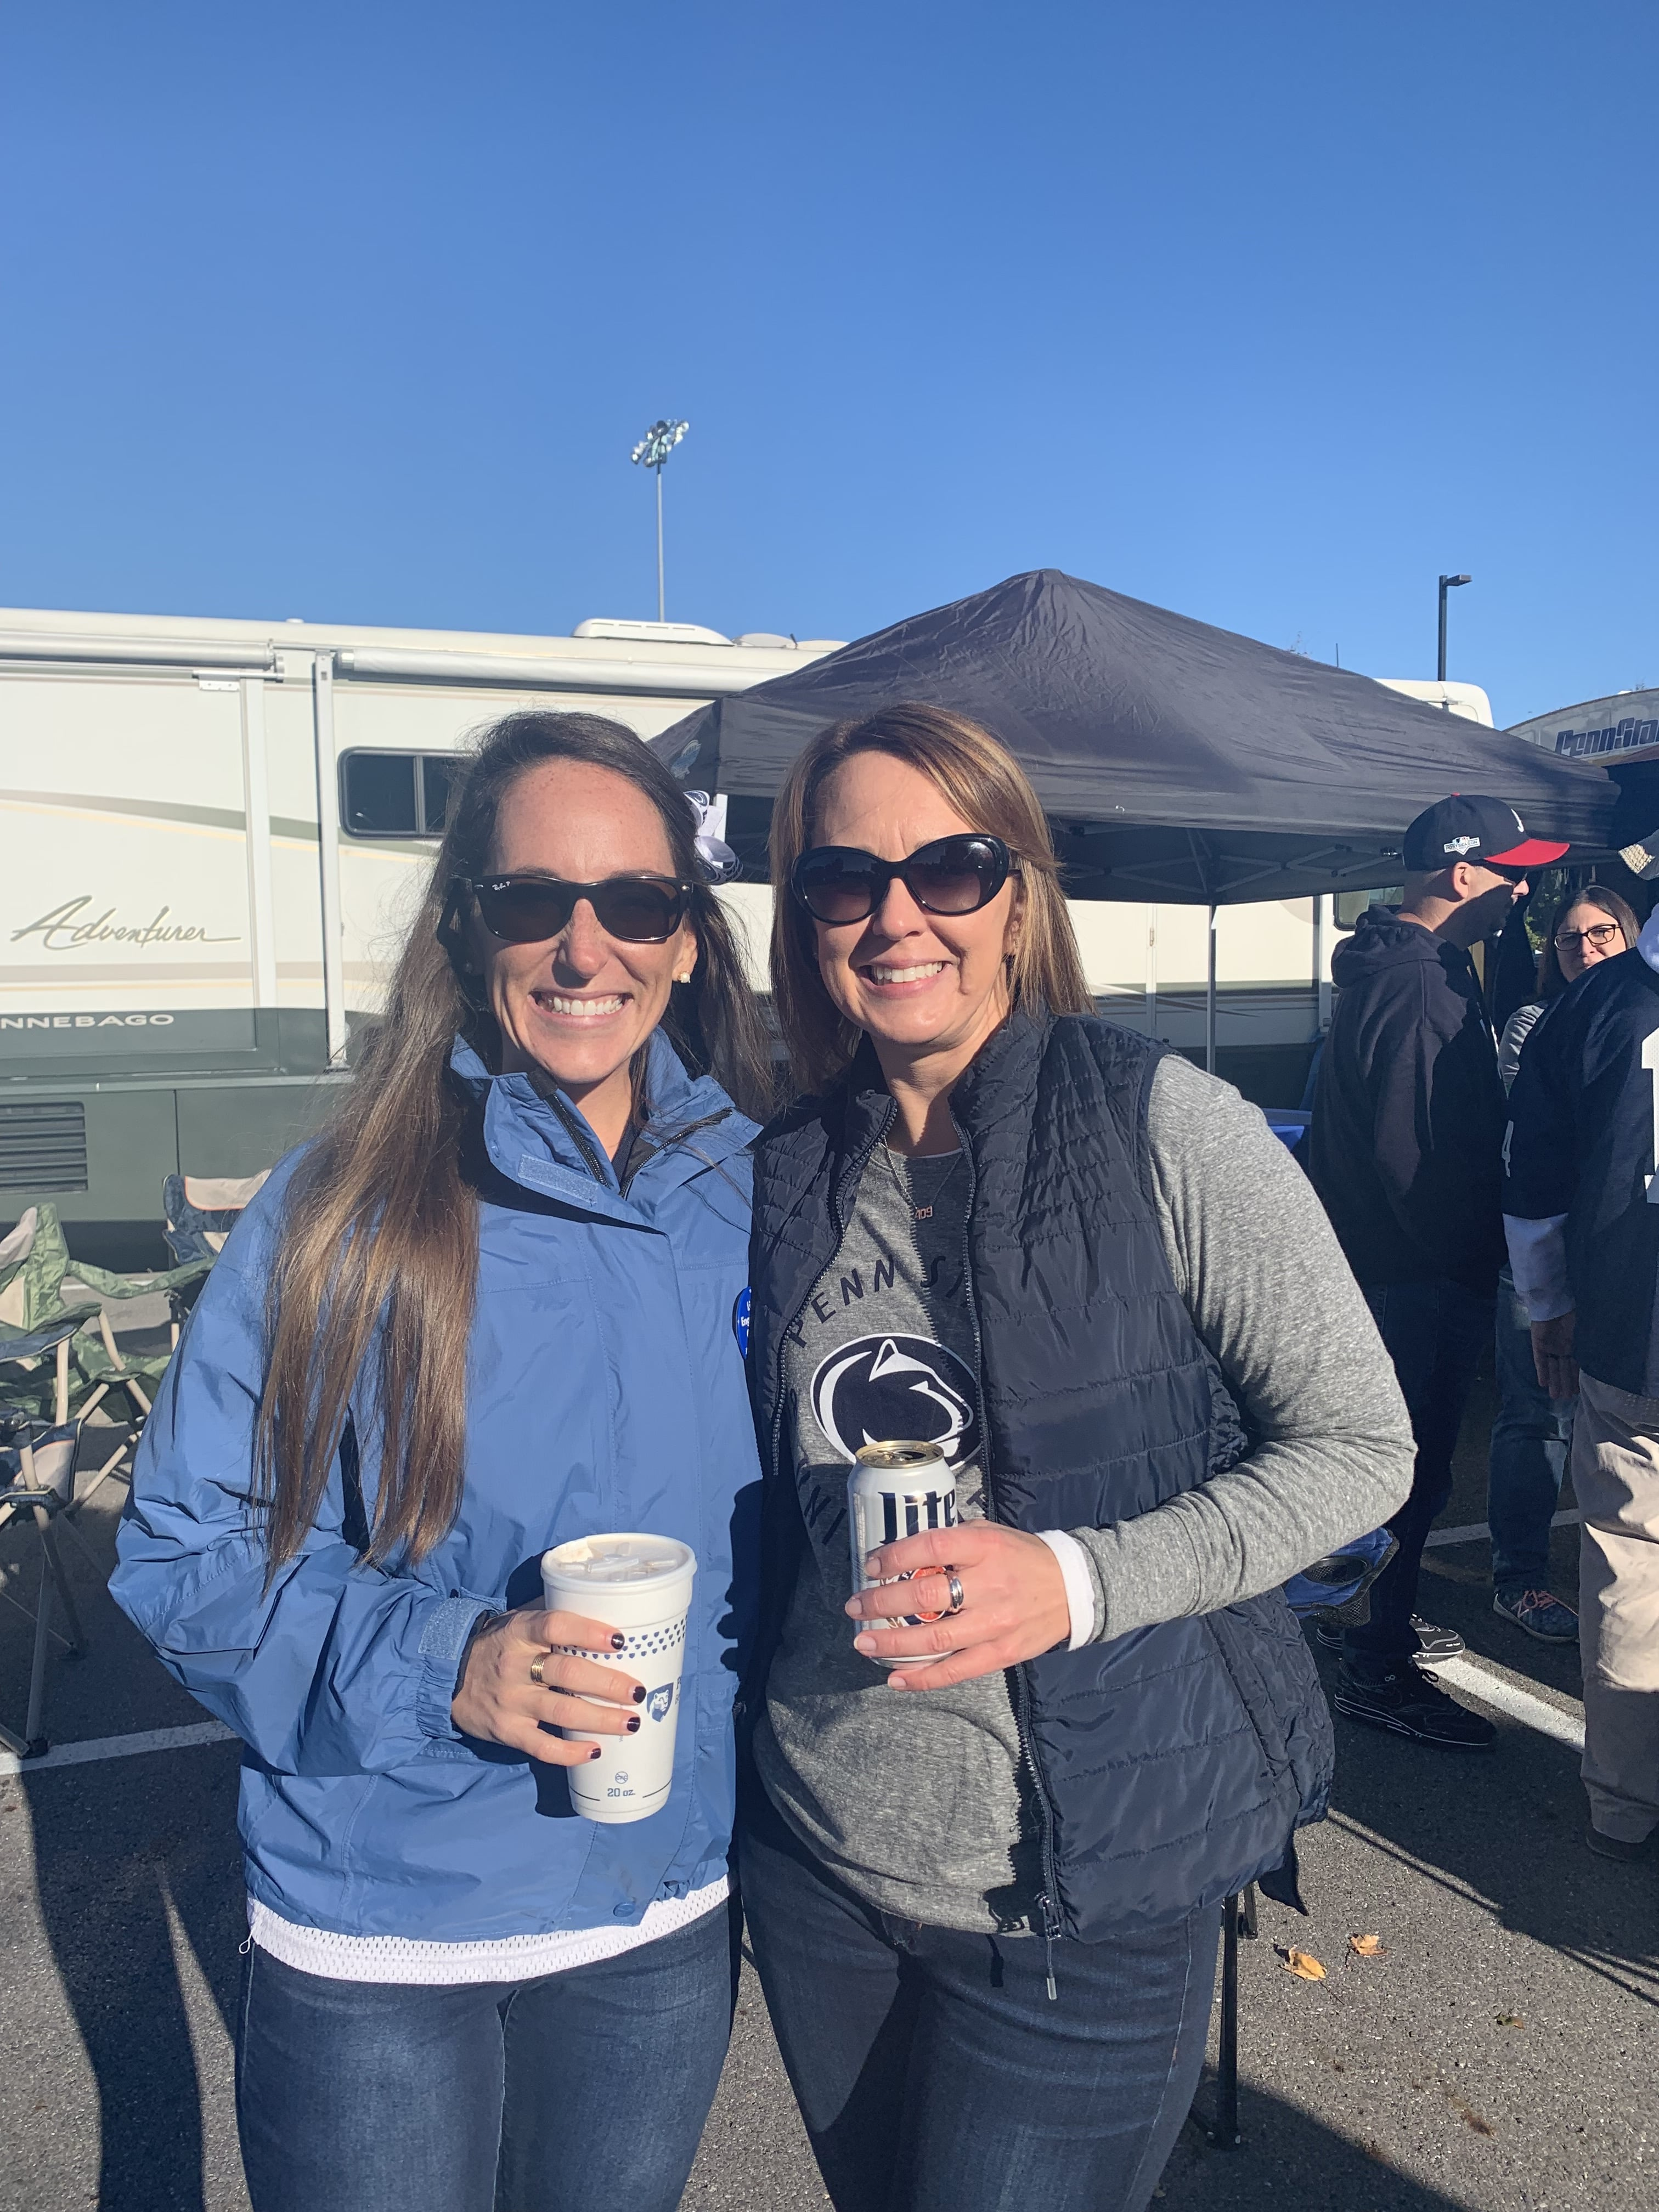 Penn State Homecoming 2019 - A trip to Penn State in State College, Pennsylvania for the 2019 Homecoming football game! | Penn State Football - State College, Pennsylvania - Beaver Stadium - Tailgating - PSU - Happy Valley